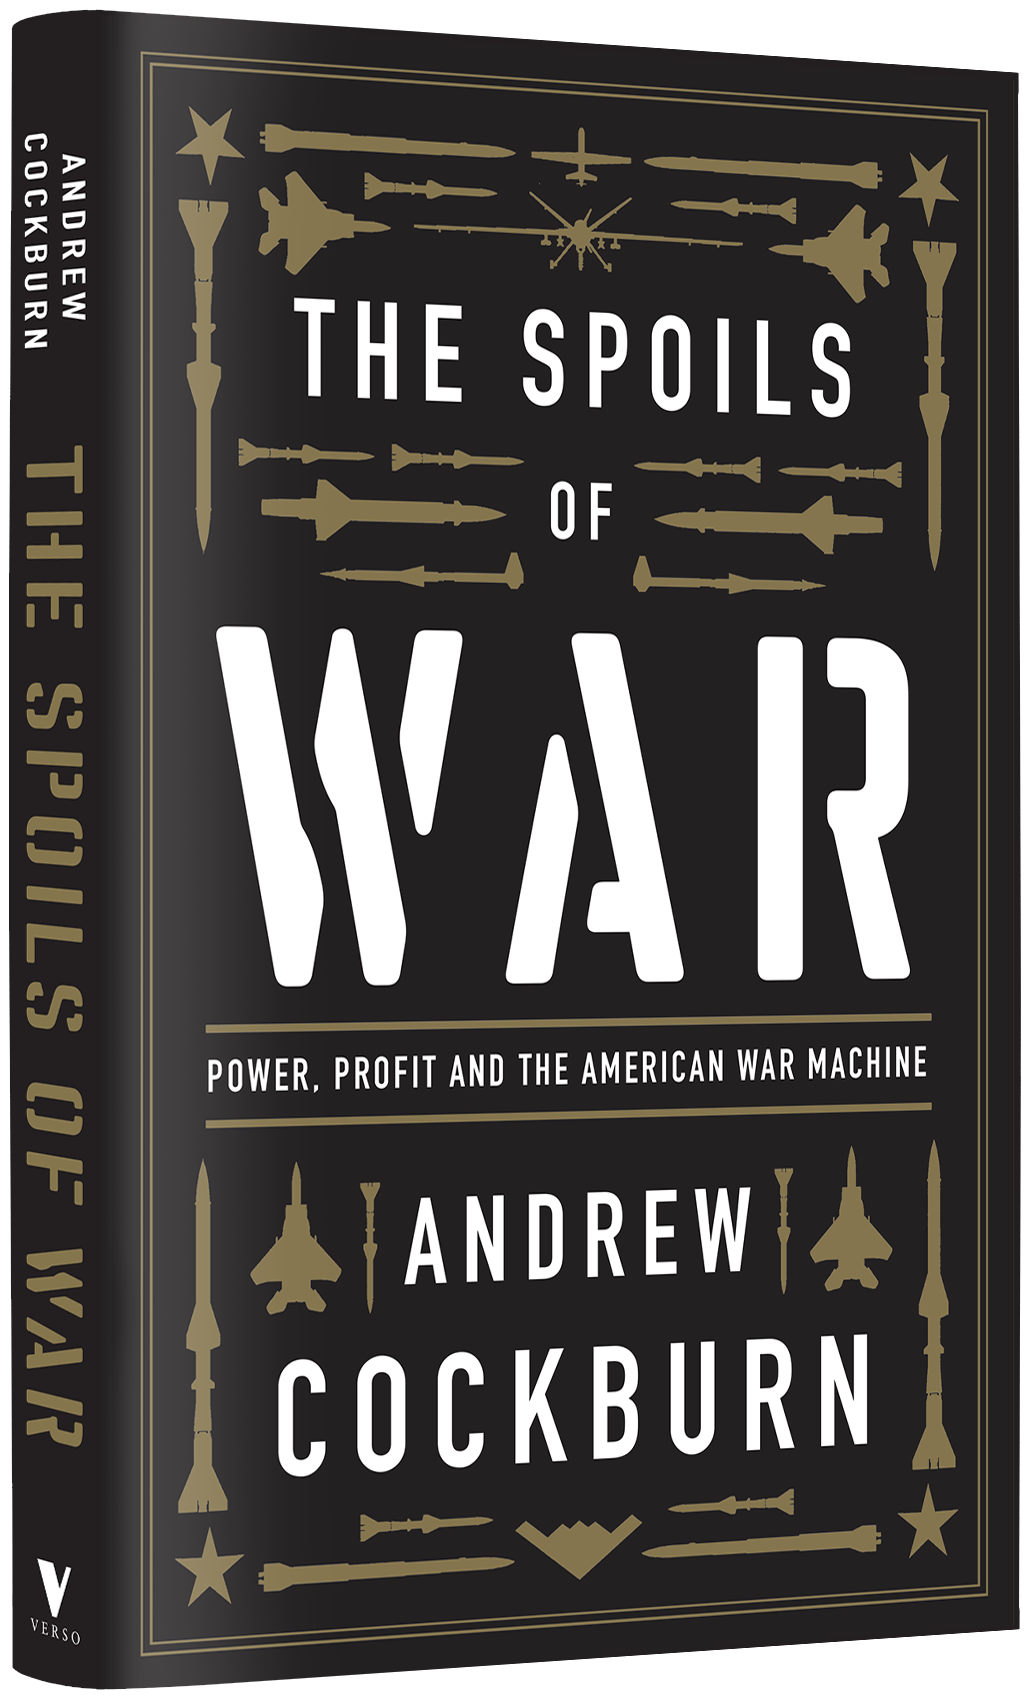 The-spoils-of-war